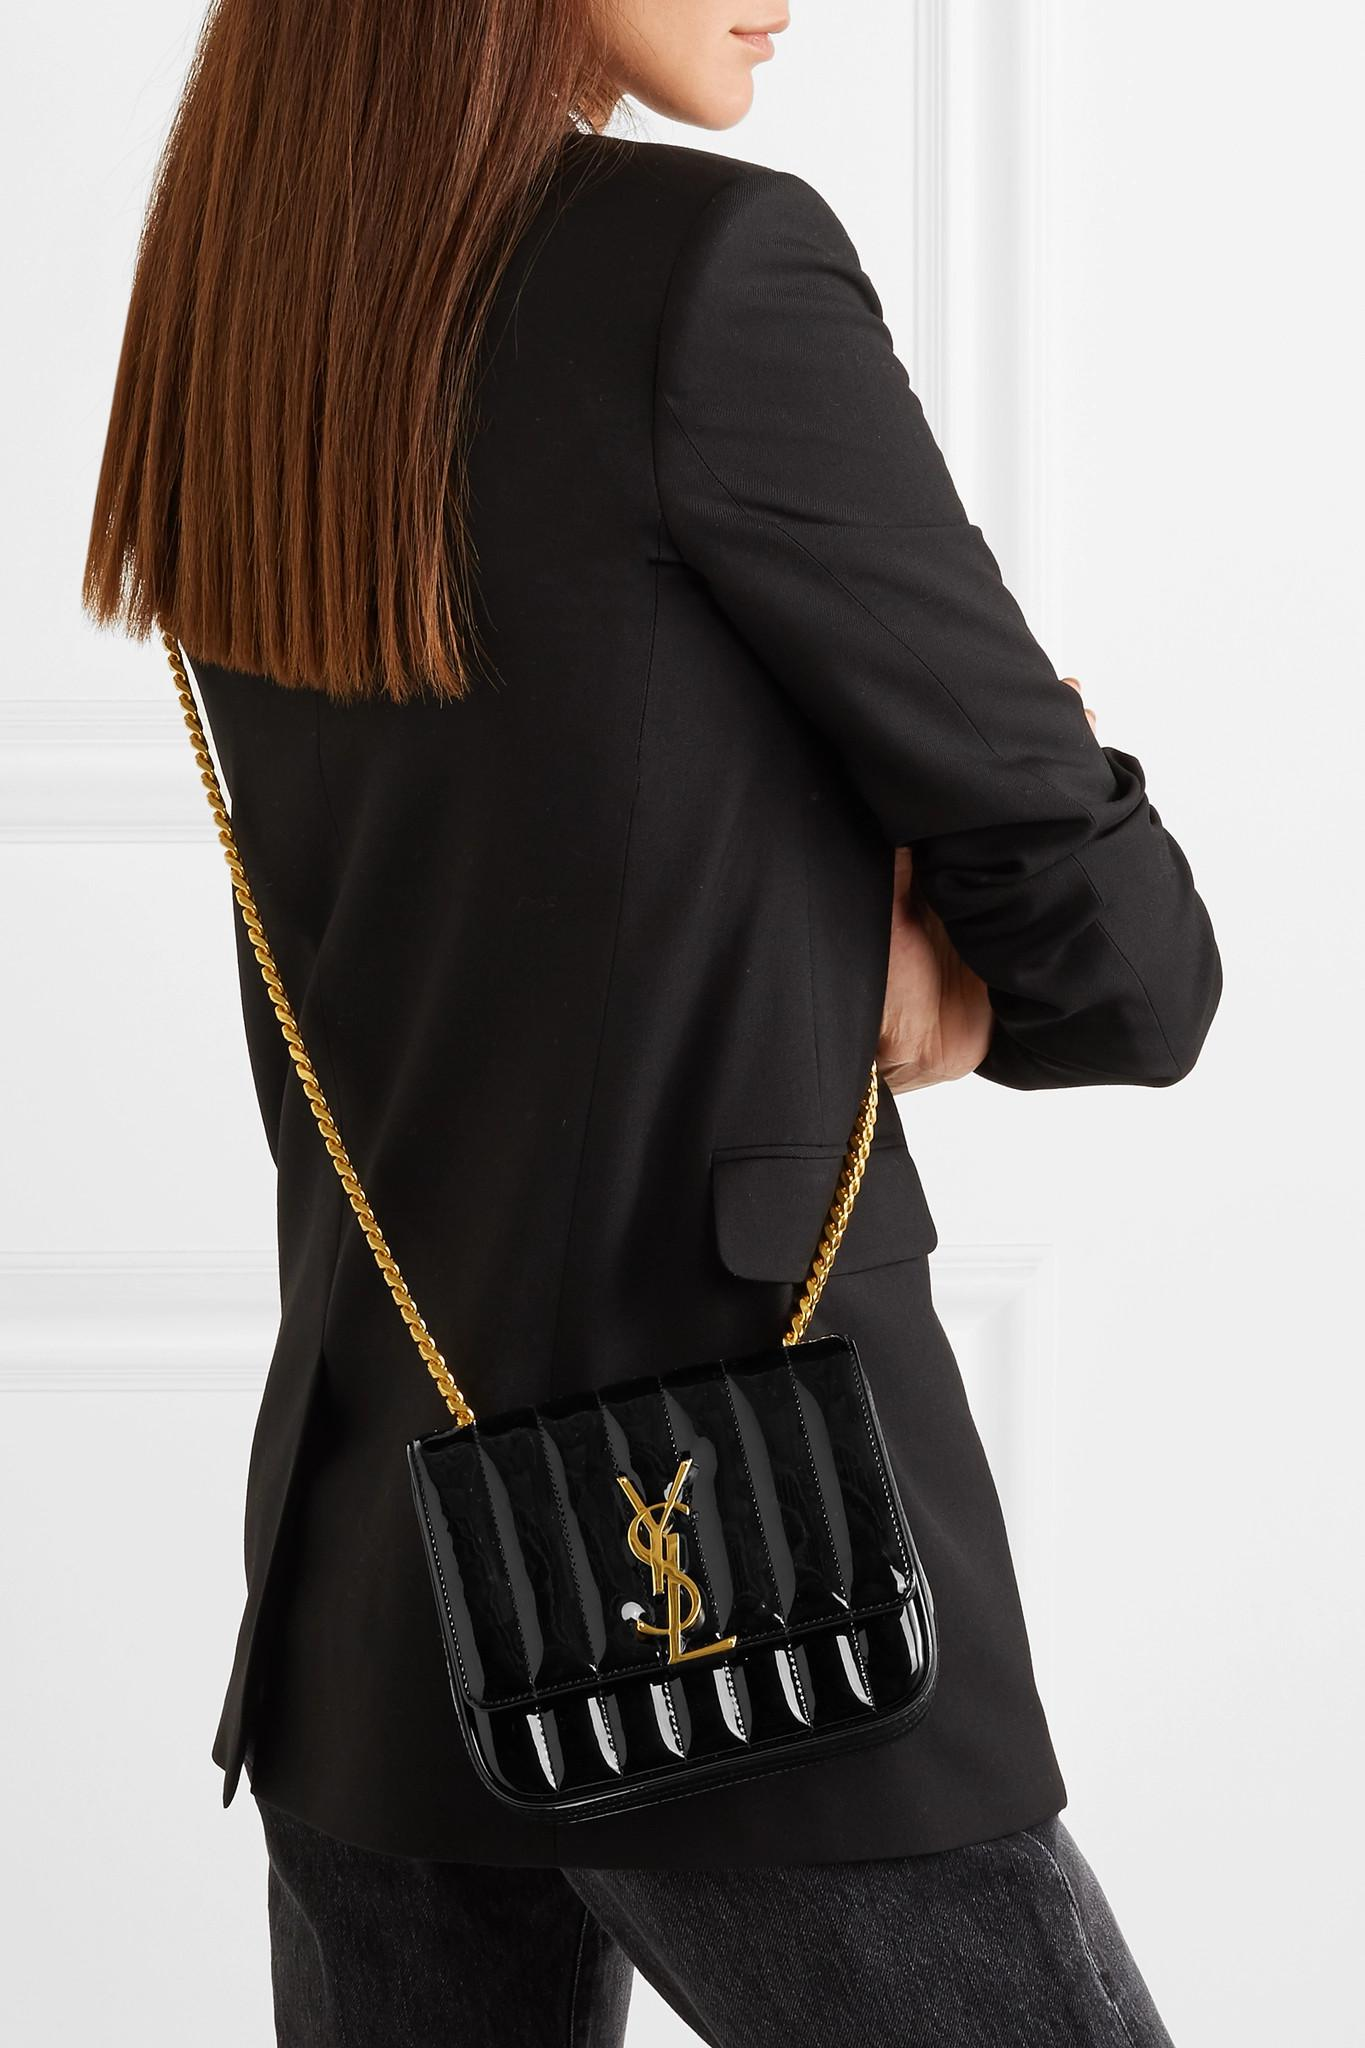 022edc6fbe Saint Laurent - Black Stripe Vicky Leather Shoulder Bag - Lyst. View  fullscreen